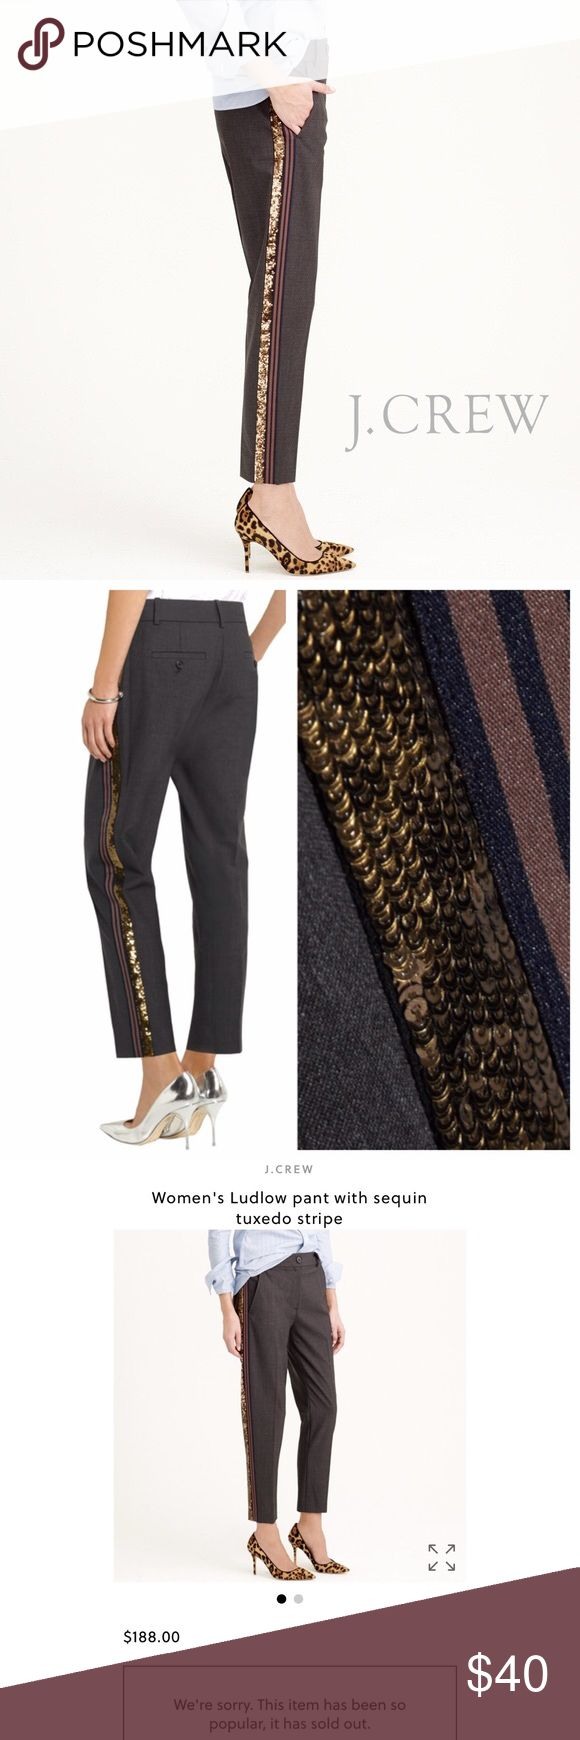 J. Crew Ludlow with sequin tuxedo stripe pant •See above details   No trades All offers considered  All orders shipped within 24hrs (business day) J. Crew Pants Trousers